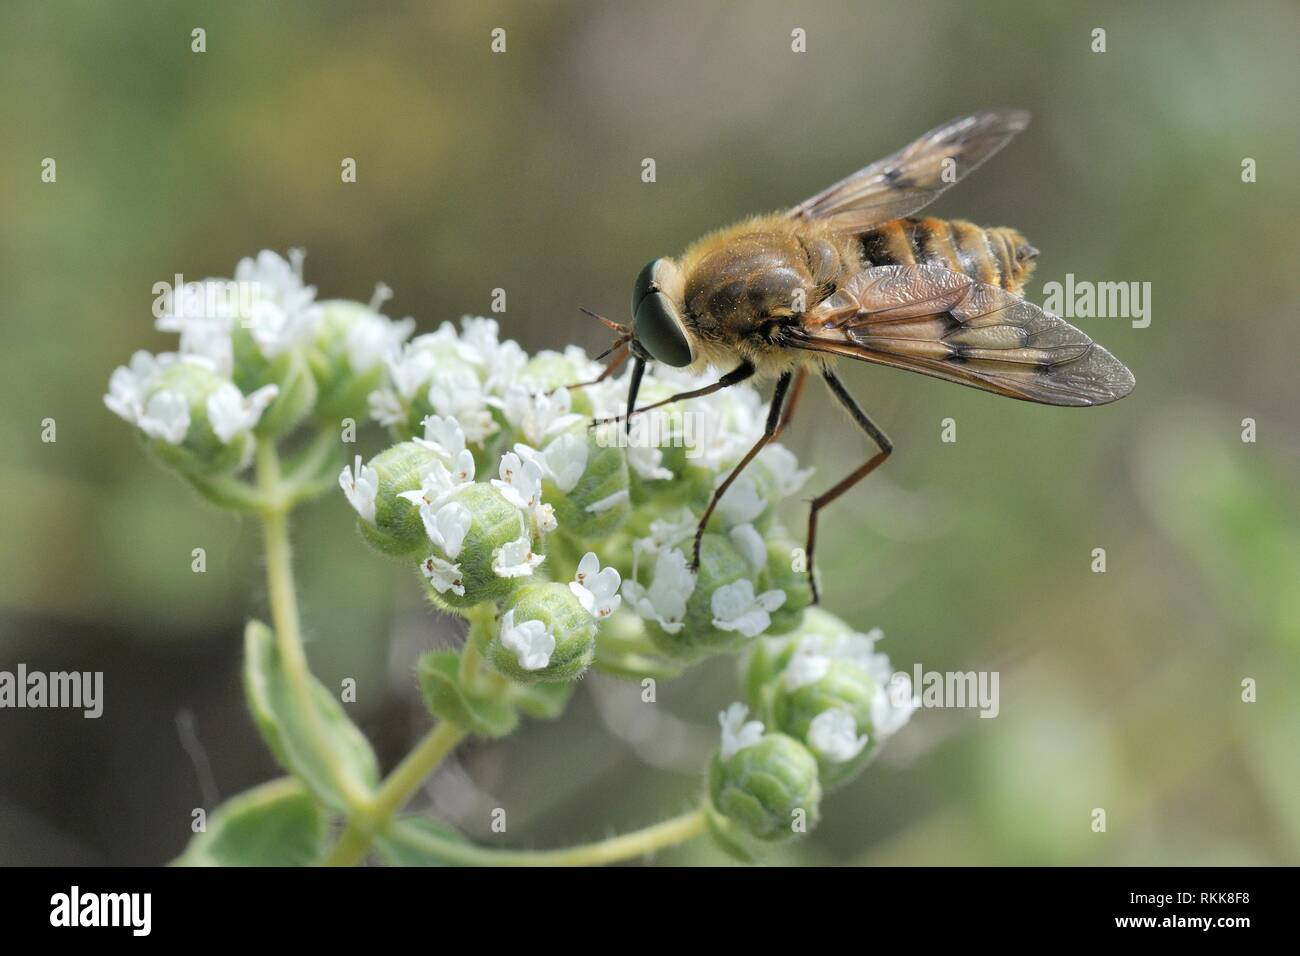 A strictly nectar-feeding species of Horse fly (Pangonius pyritosus) with a very long proboscis foraging on Cretan oregano (Origanum onites) flowers,  - Stock Image